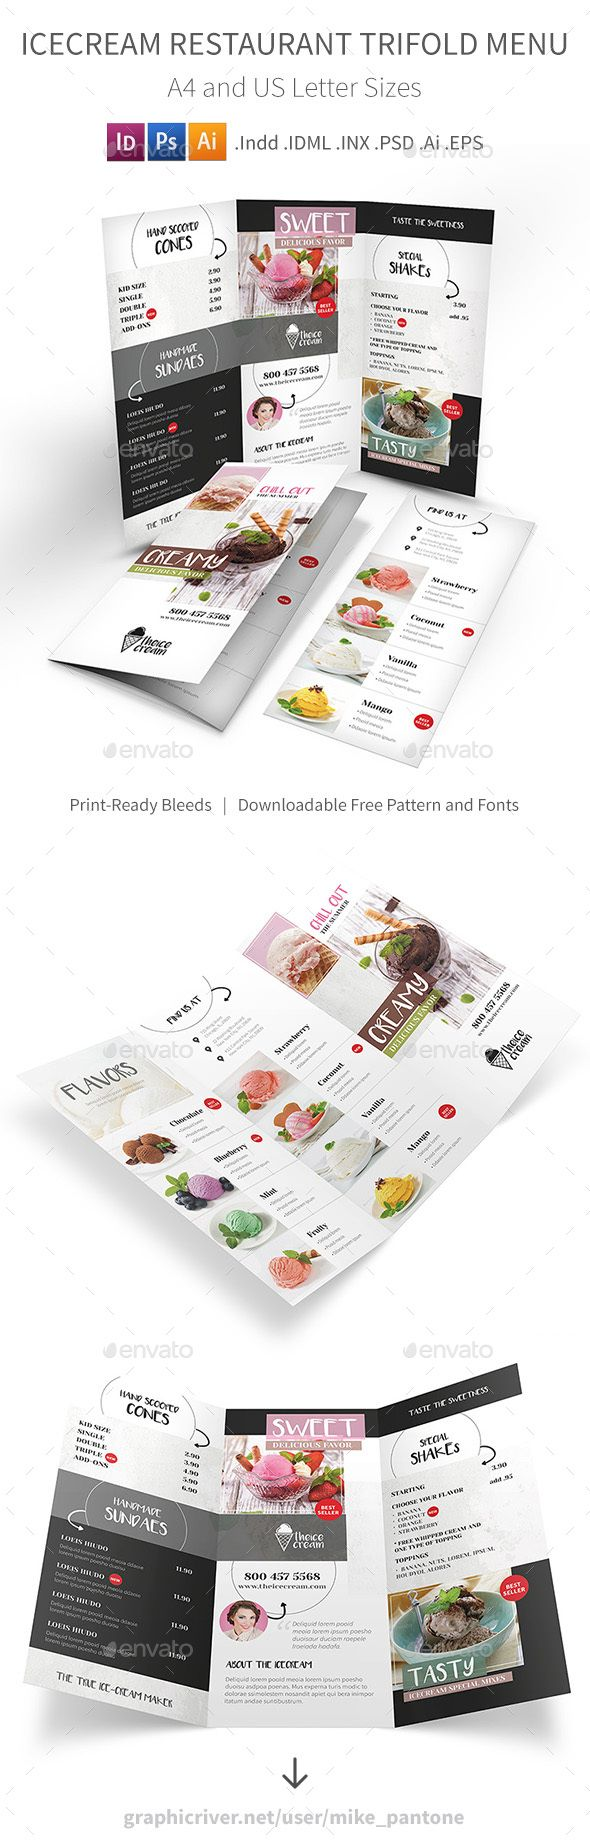 Ice Cream Restaurant Trifold Menu Pinterest Cream Restaurant - Folded menu template